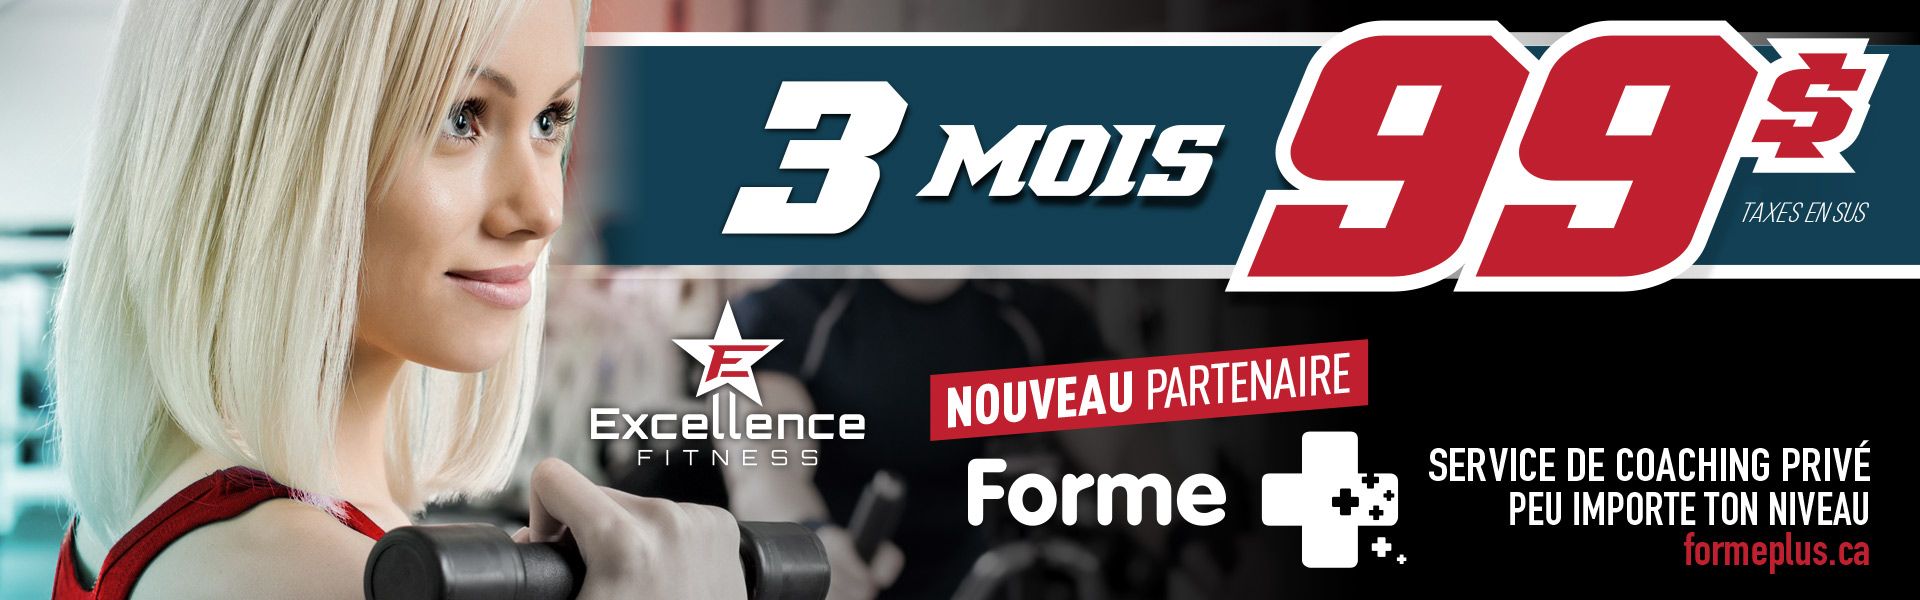 Excellence Fitness Sherbrooke, promotion 3 mois 99$